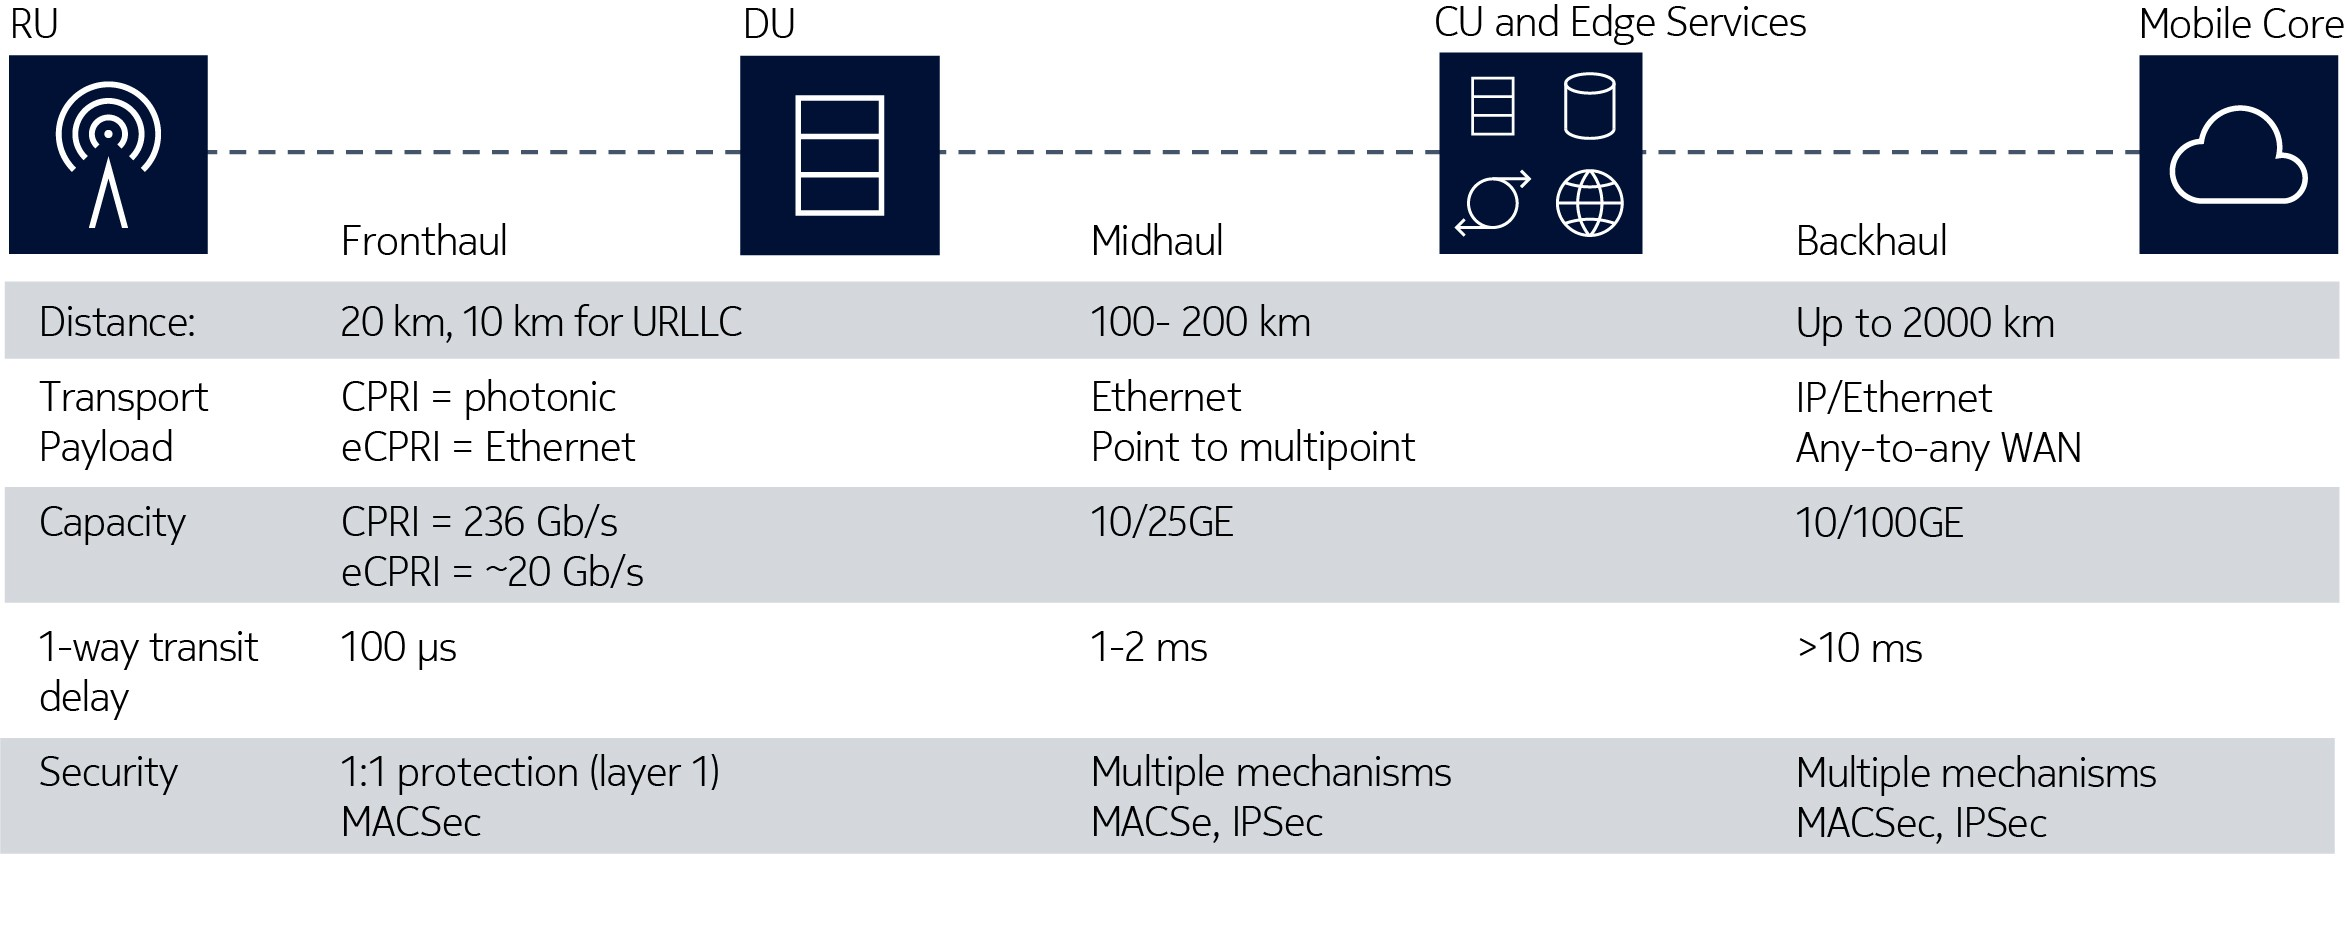 Figure 3. Typical 5G fronthaul, midhaul and backhaul configurations summarized